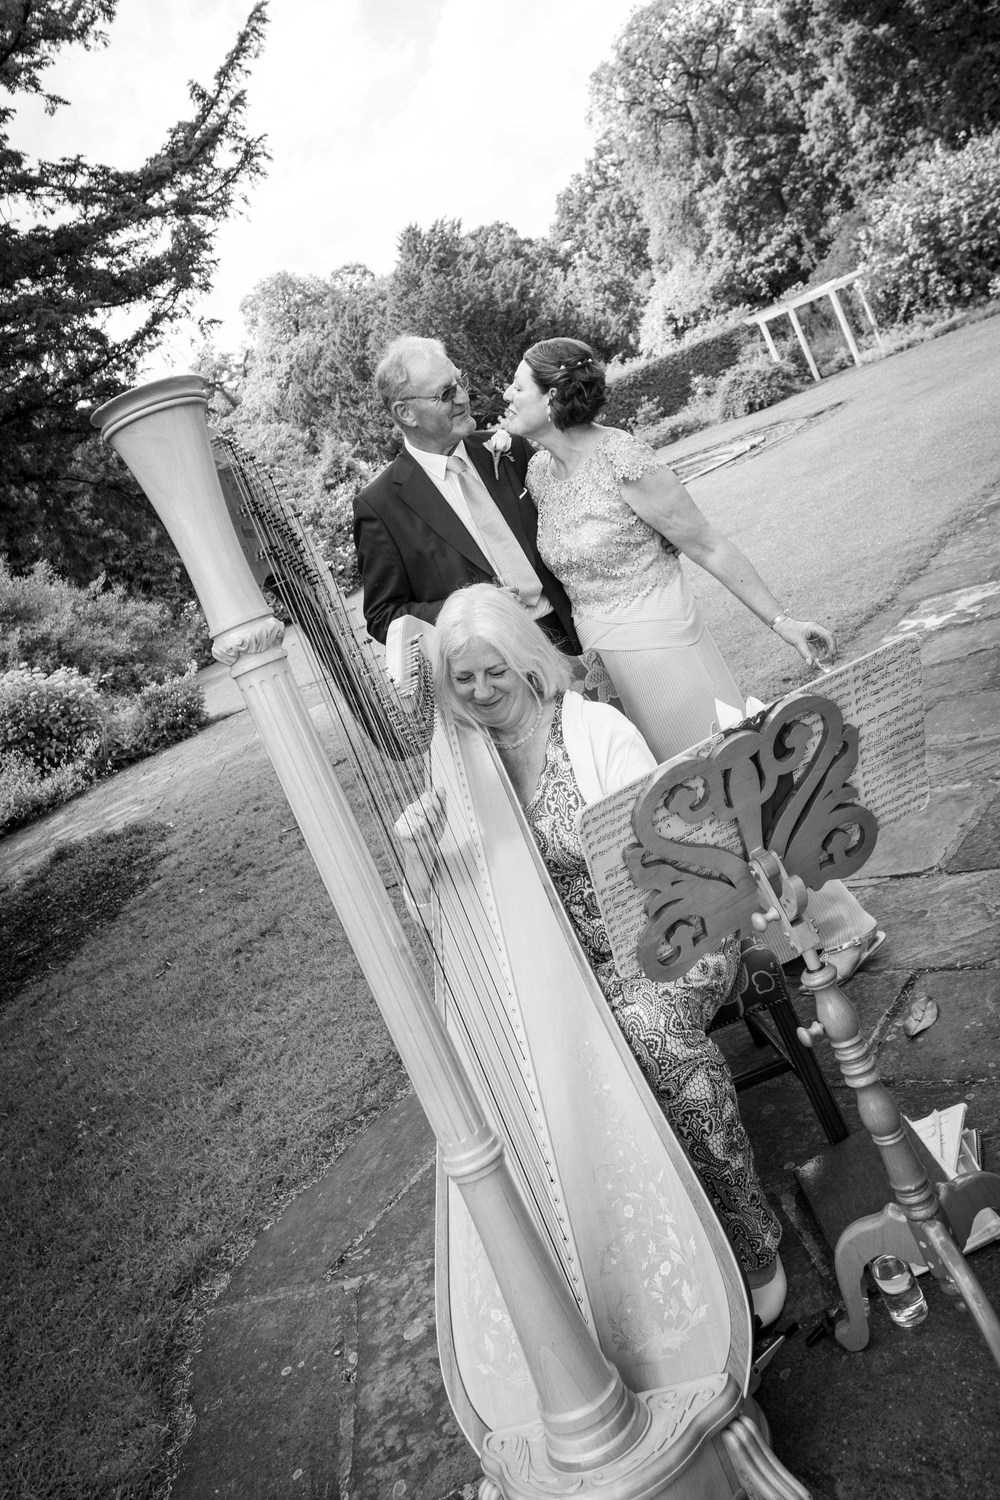 Sue and Stuart at Stapleford Park - Photographer www.markpugh.com